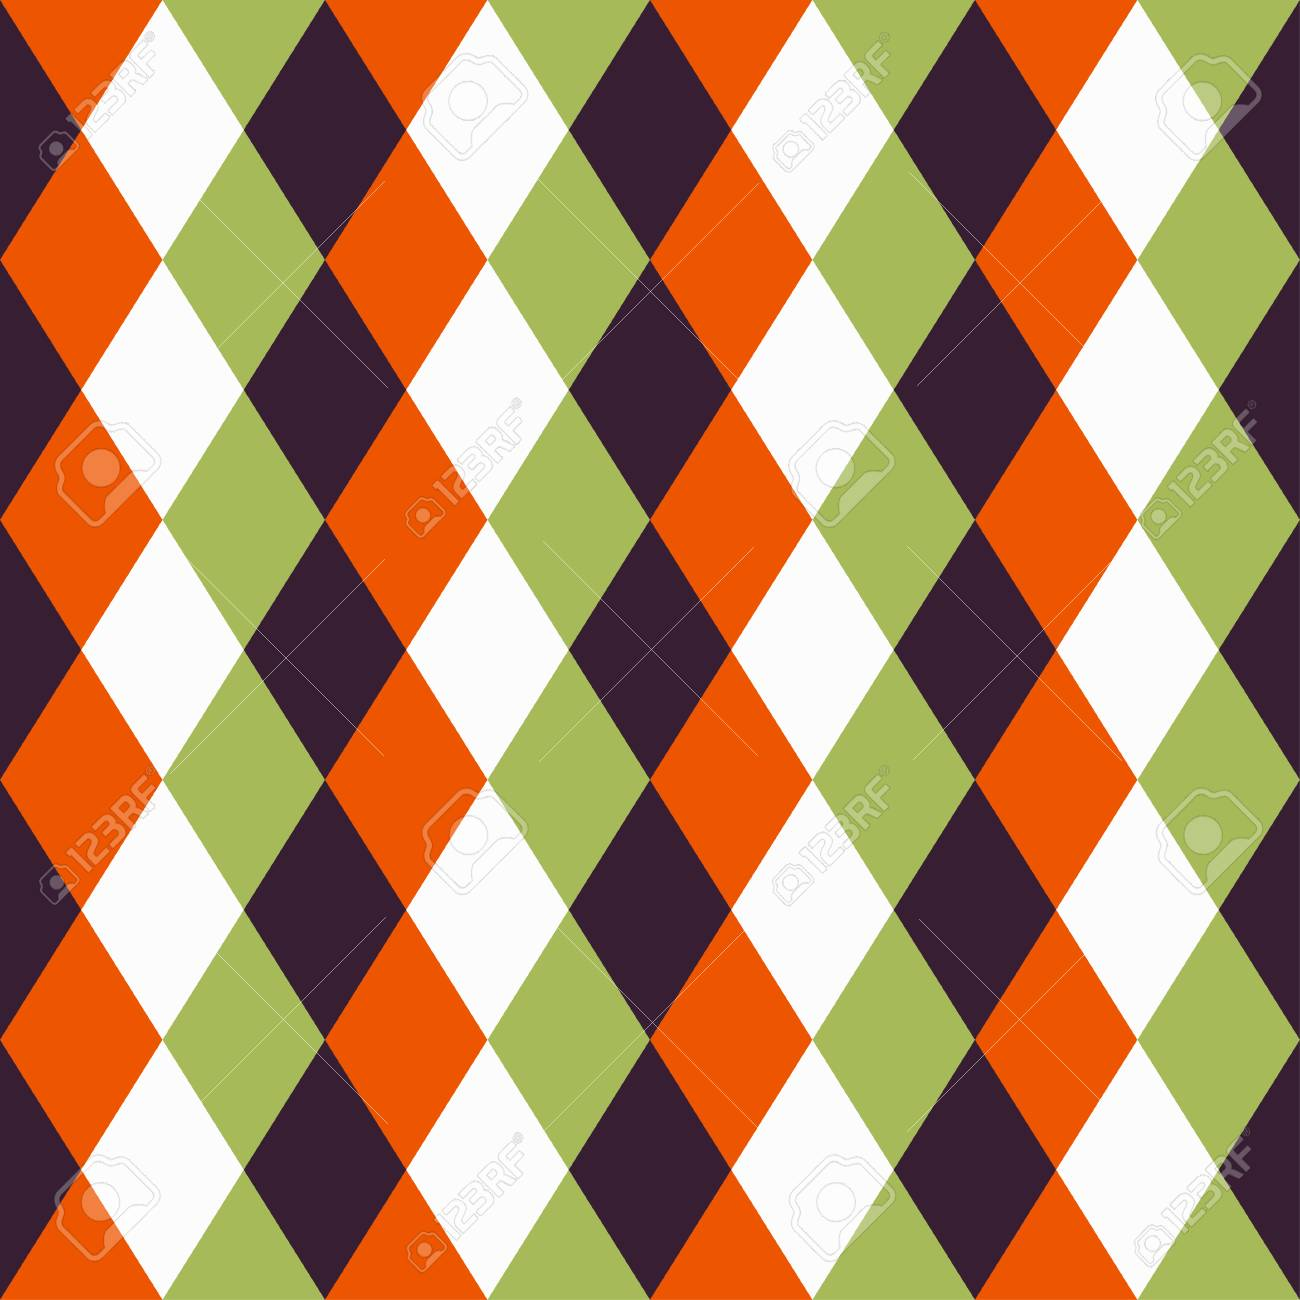 Happy Halloween Background. Seamless pattern. Collection of seamless patterns in the traditional holiday colors. - 44353671